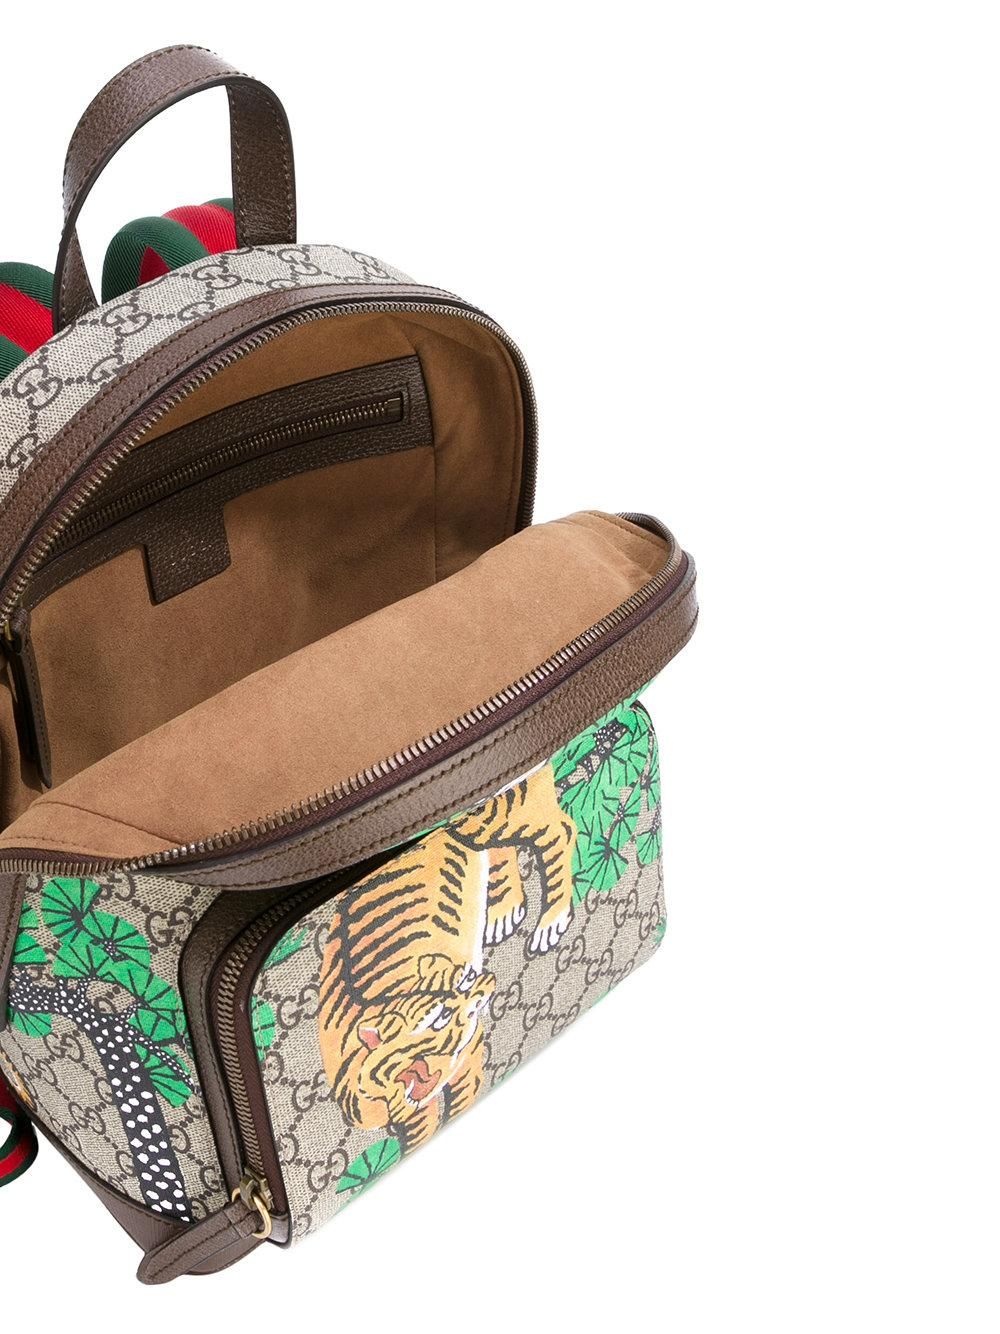 Gucci Bag Code For Roblox Confederated Tribes Of The Umatilla